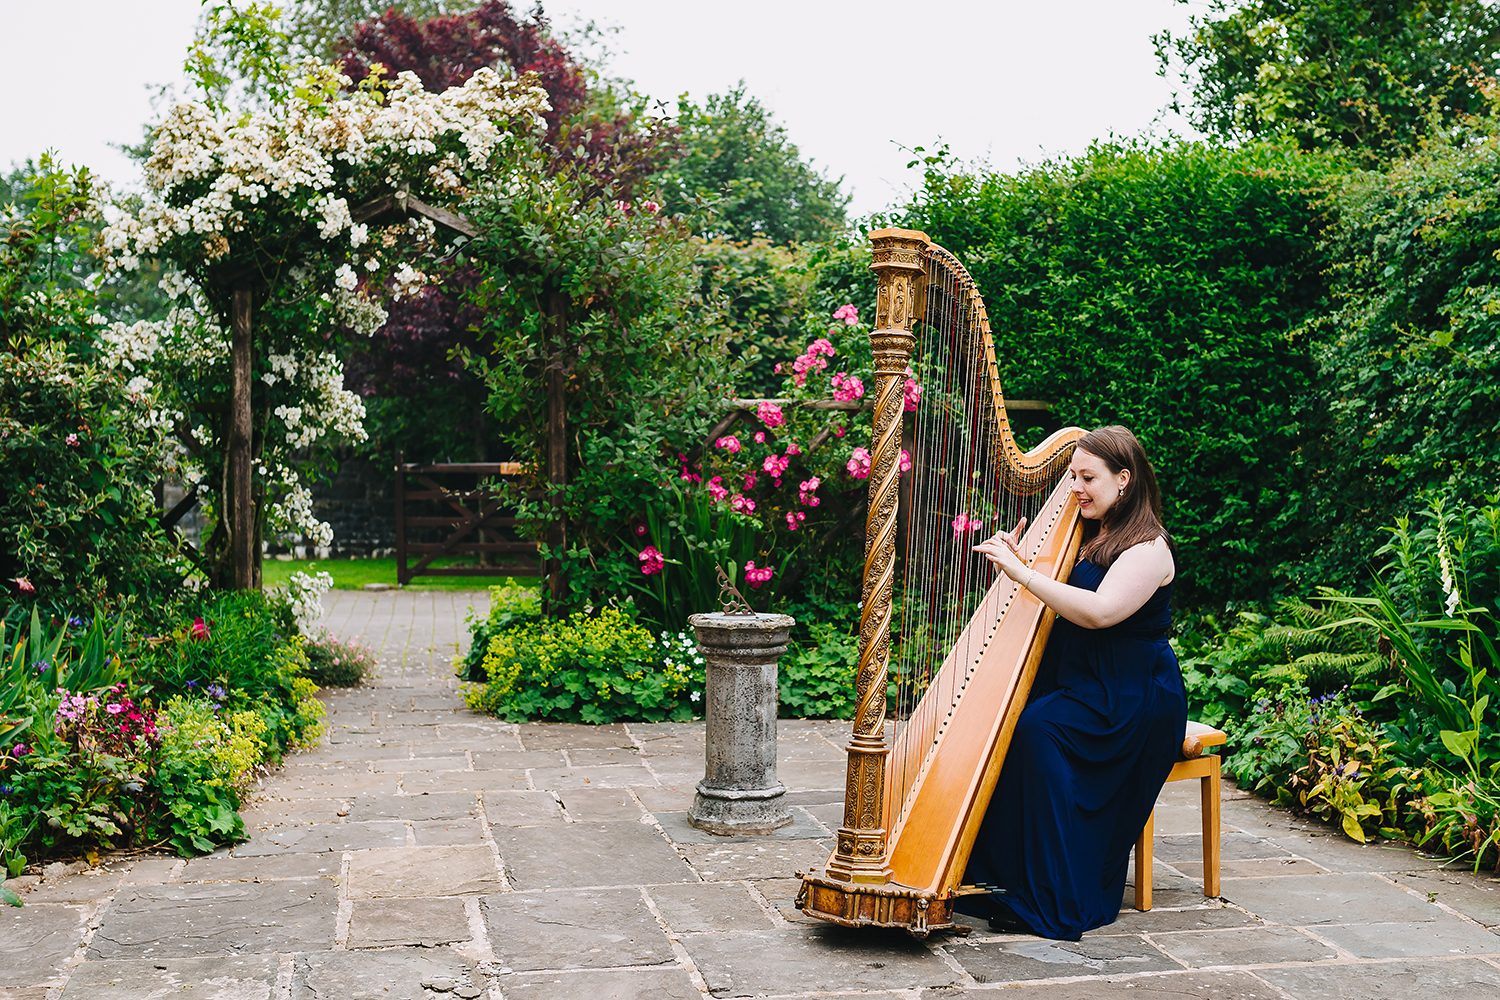 woman and harp in the garden